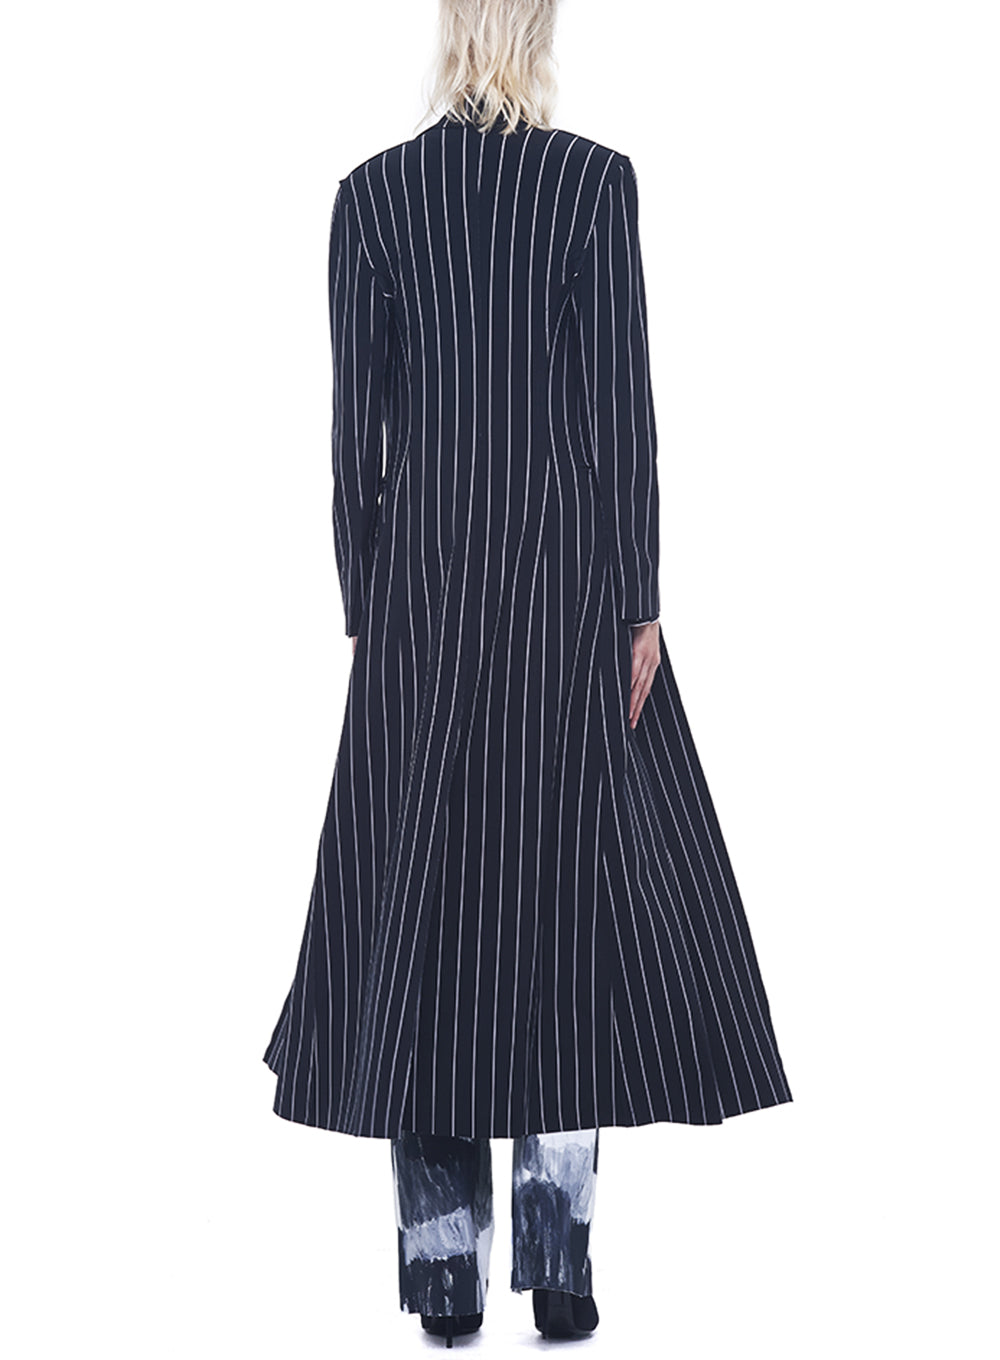 NORMA KAMALI | Single Breasted Robe in Black Stripe